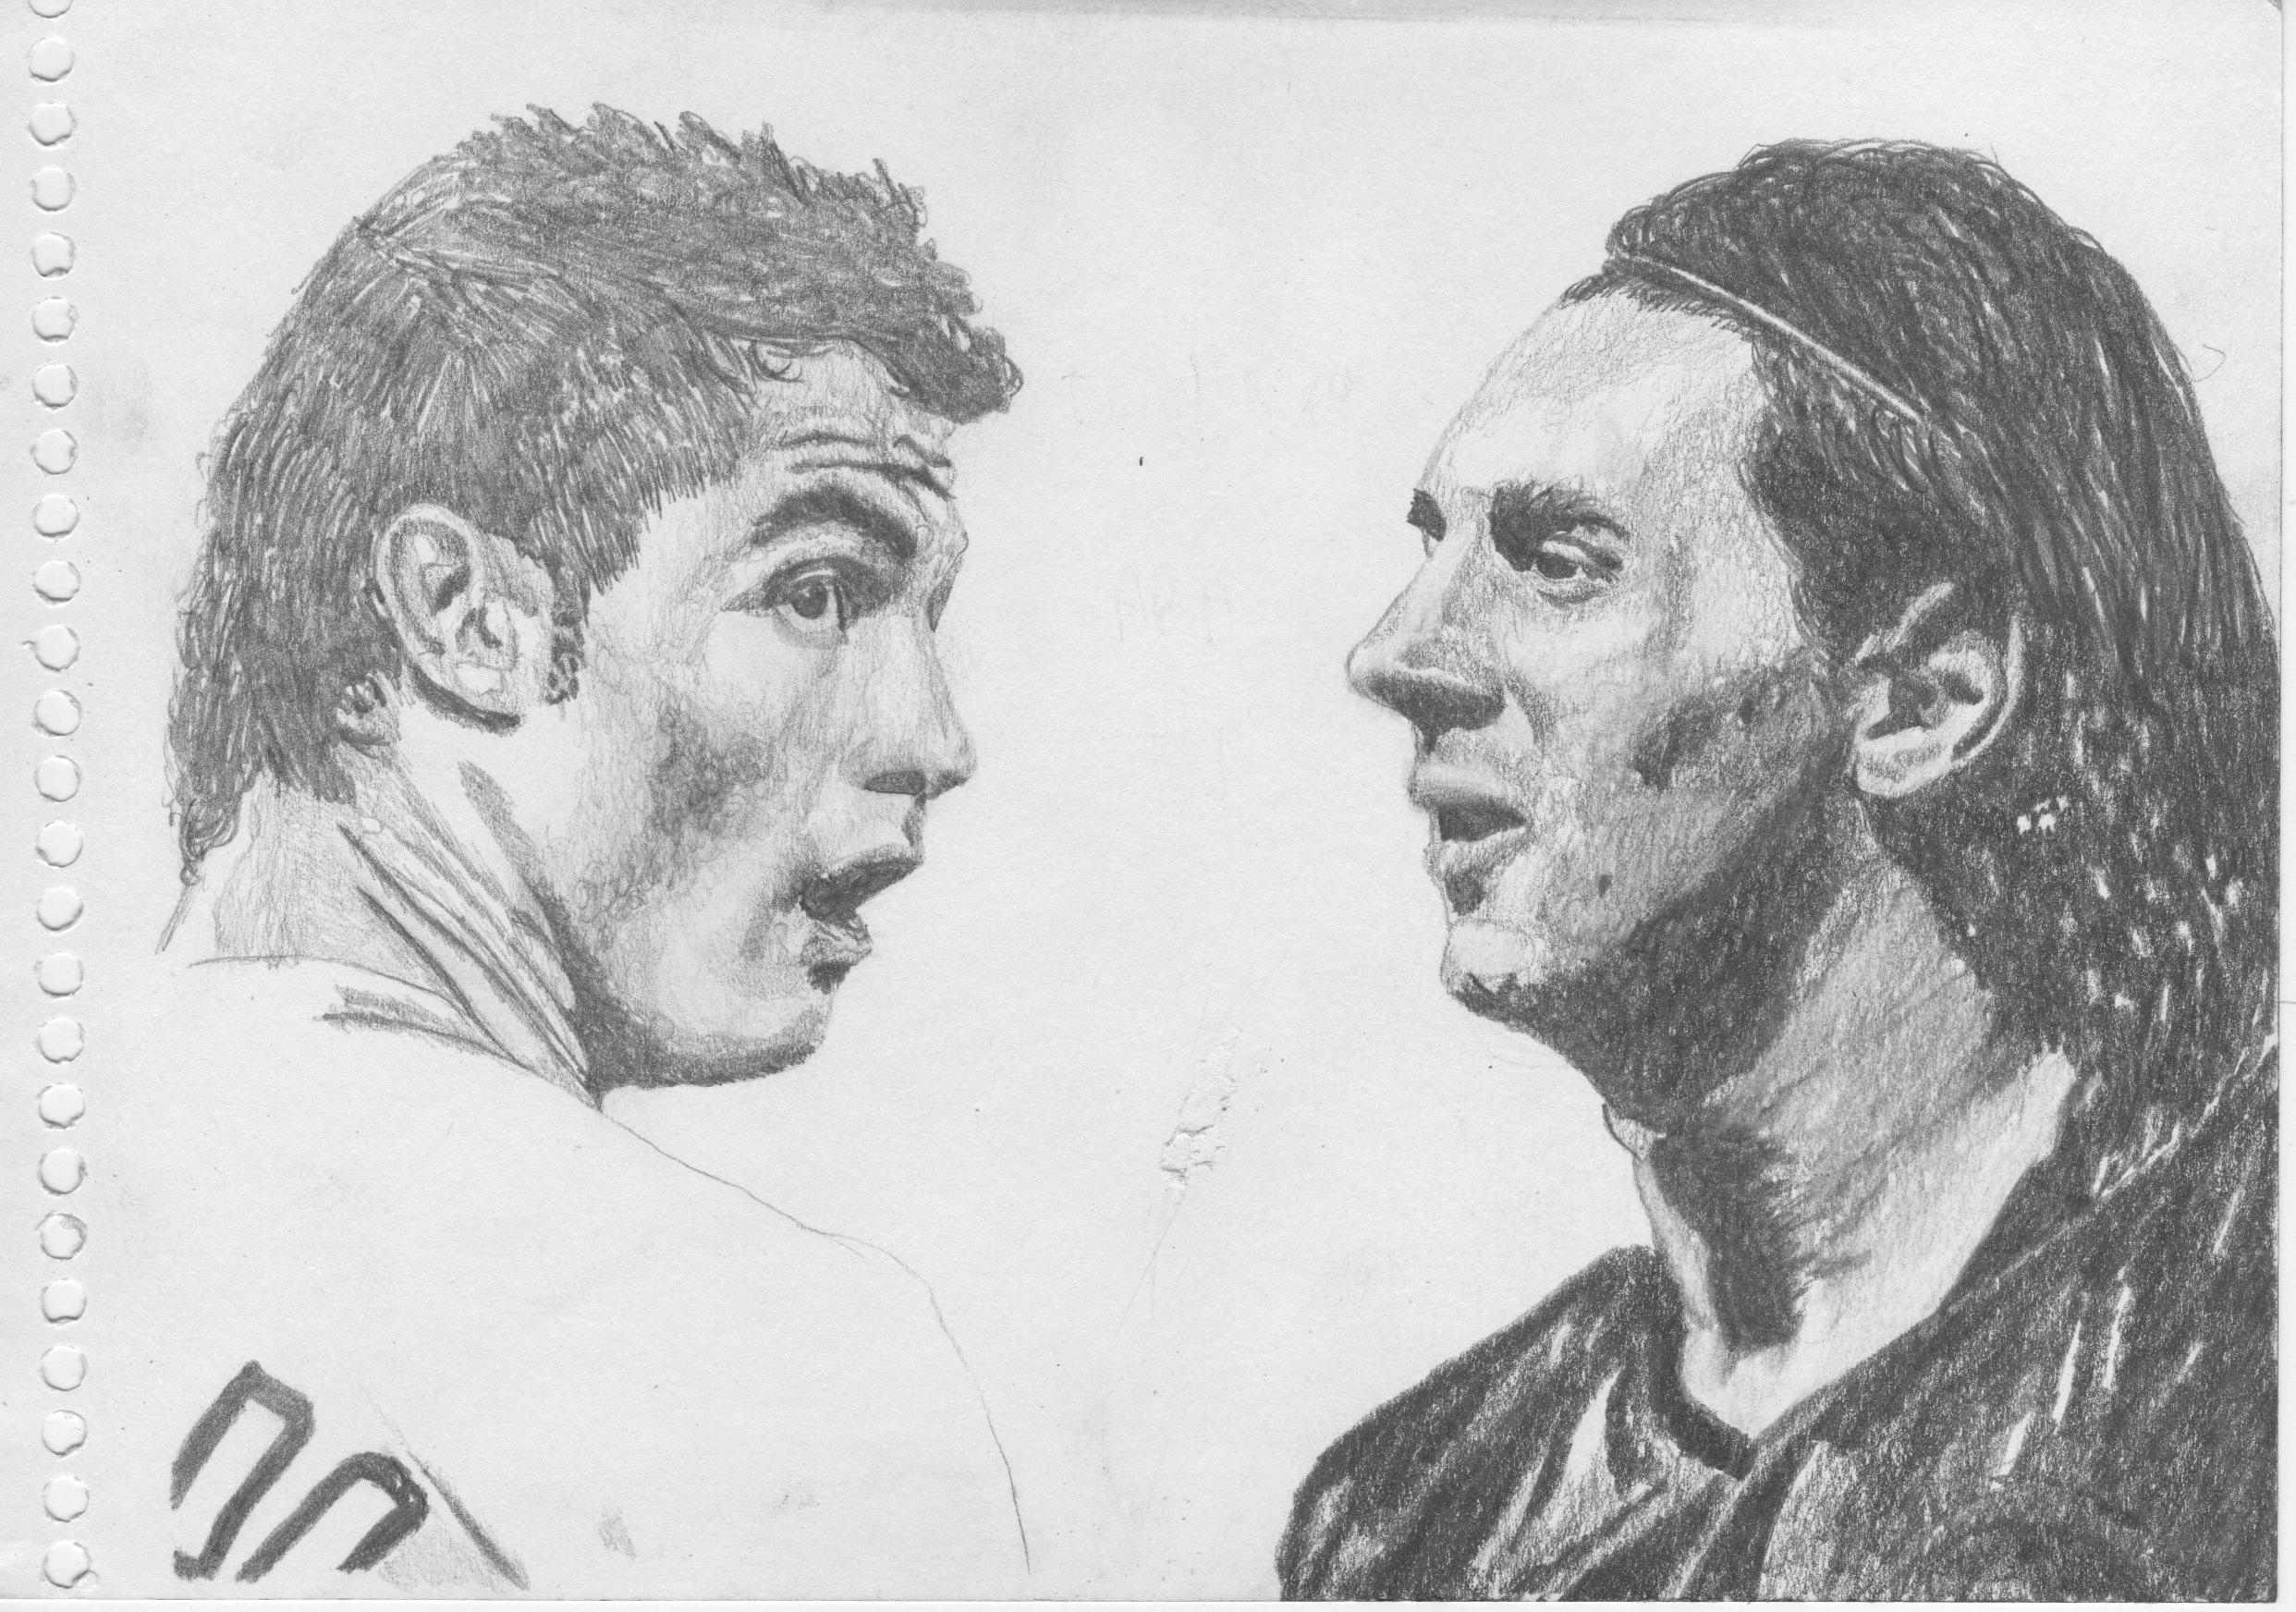 Messi vs Ronaldo, te dibujo a los 2 cracks